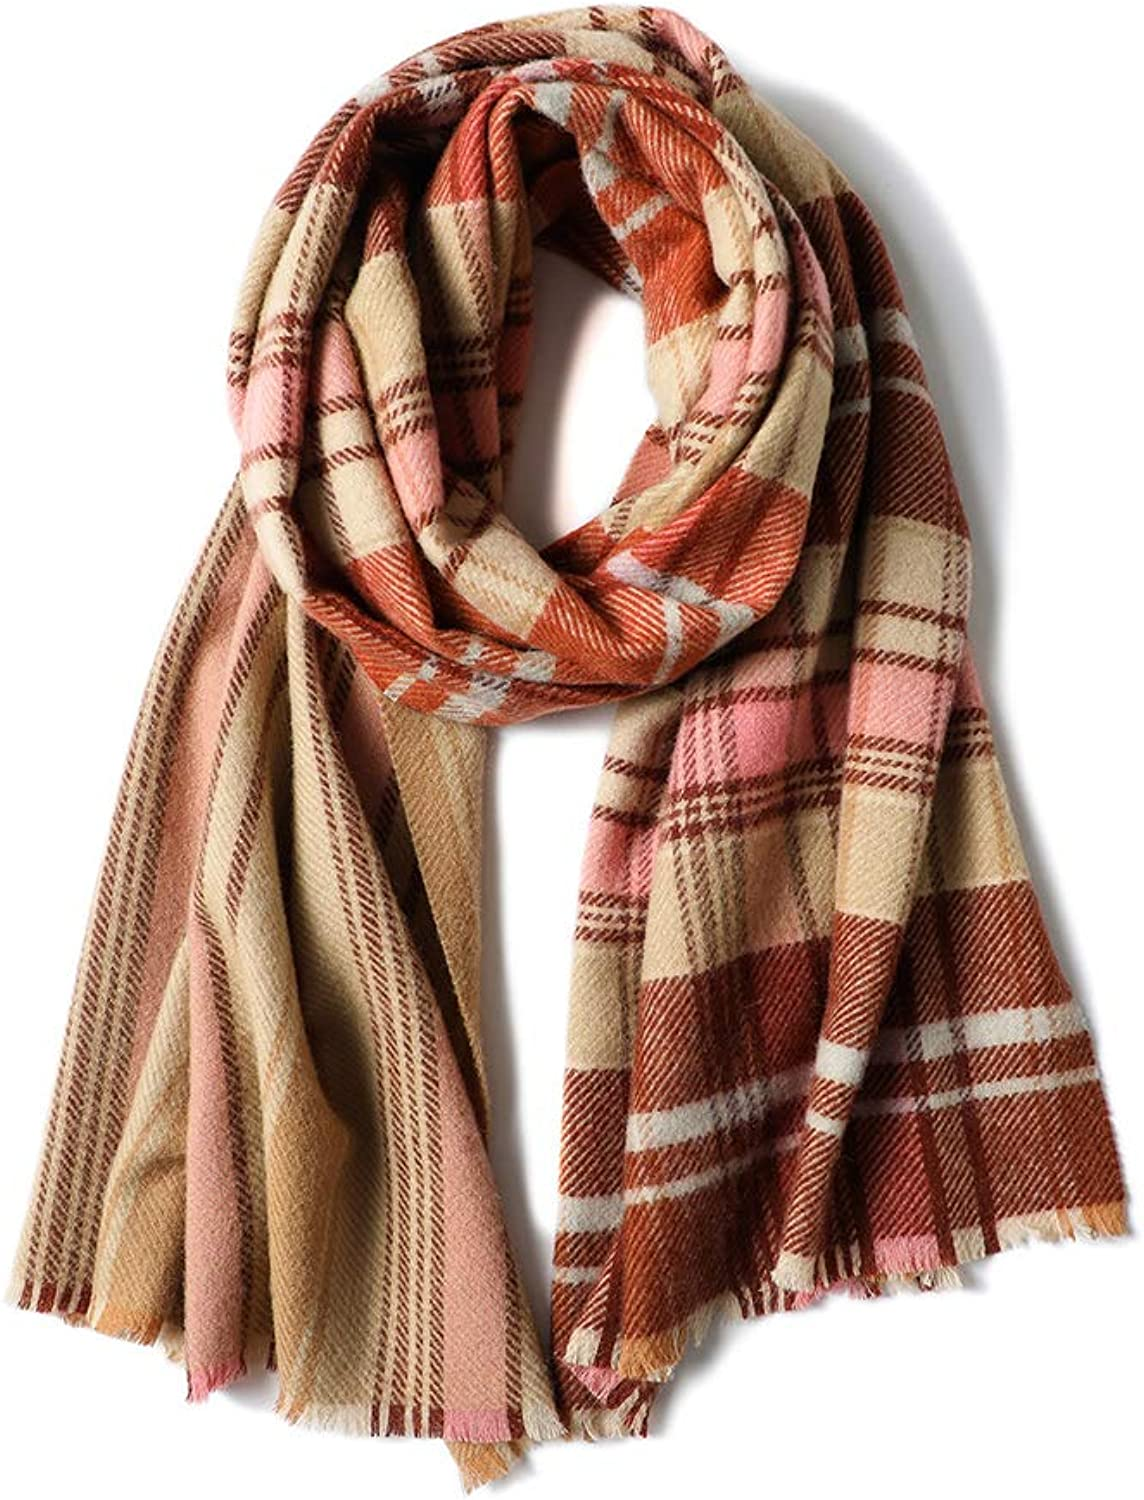 WJSW Pure Wool Tartan Scarf,Grand Super Soft Winter Fall Scarf for Men & Women 200X60cm,D